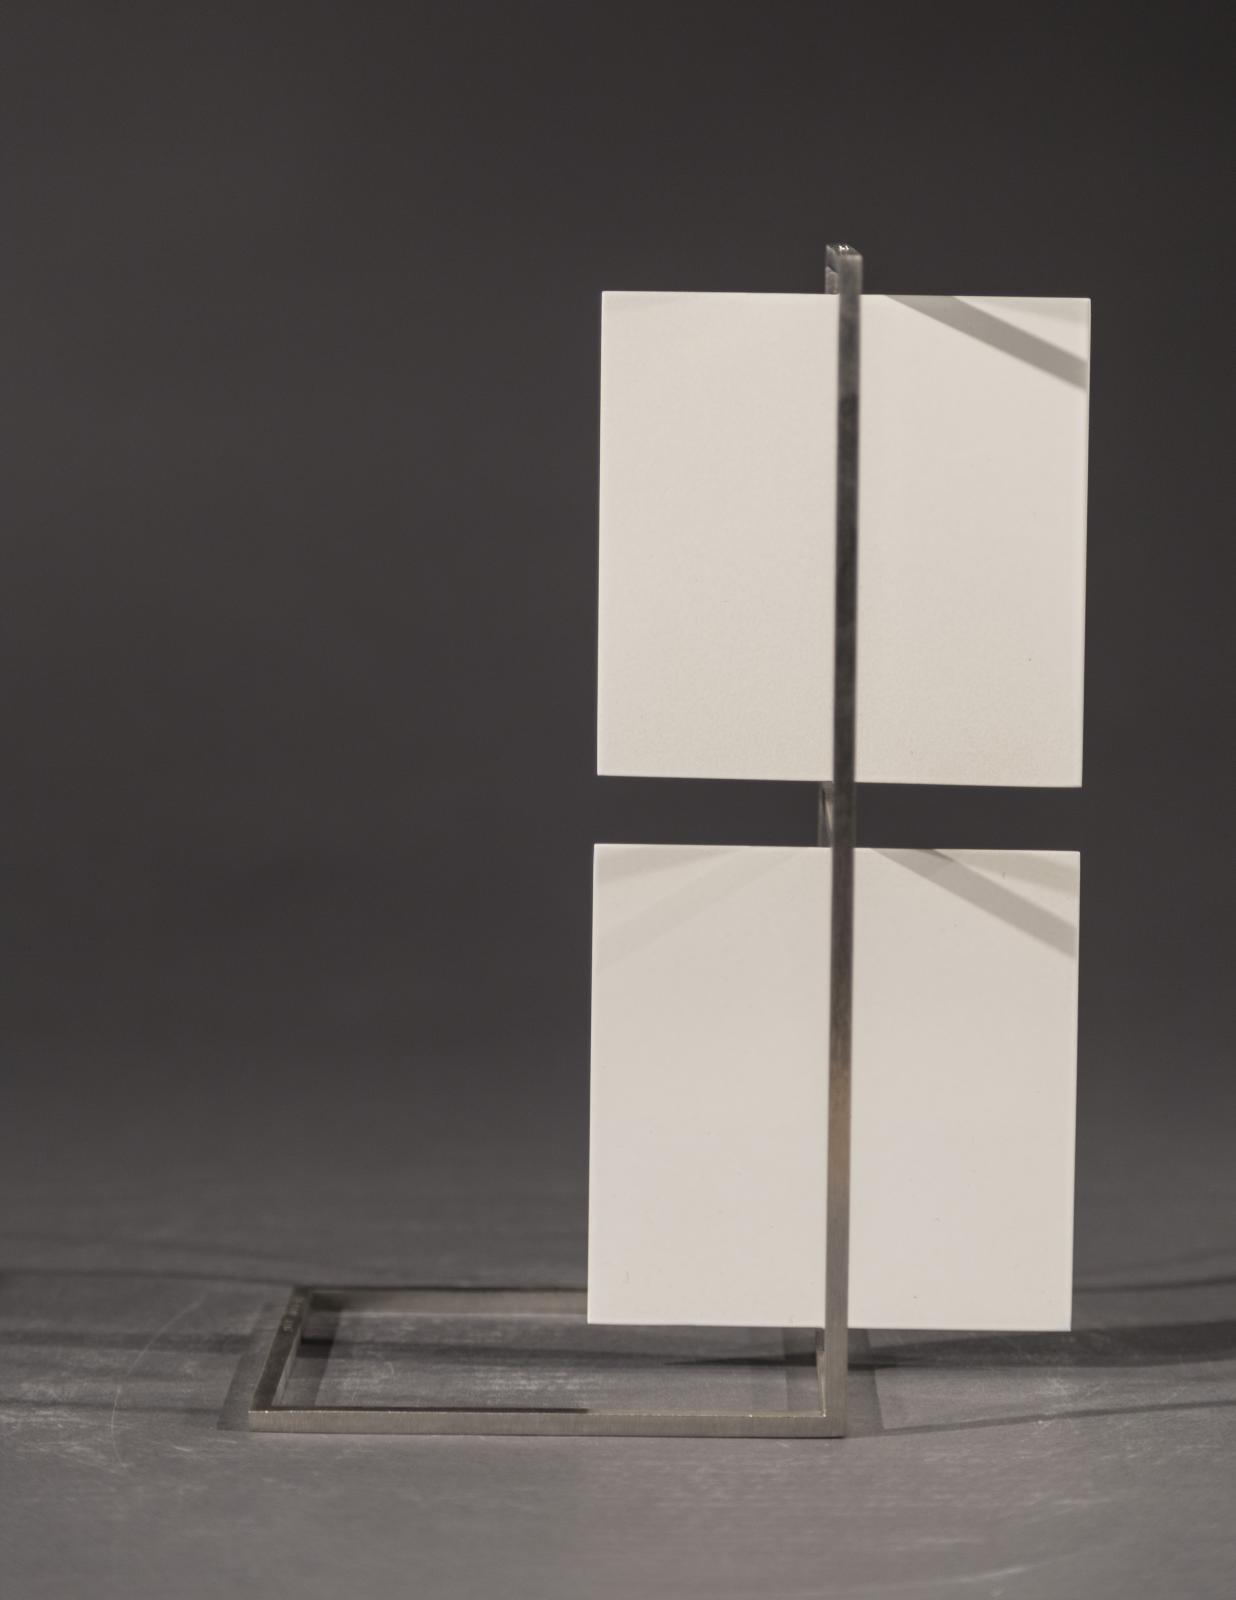 Roger Phillips, Two White Squares (maquette), 2017